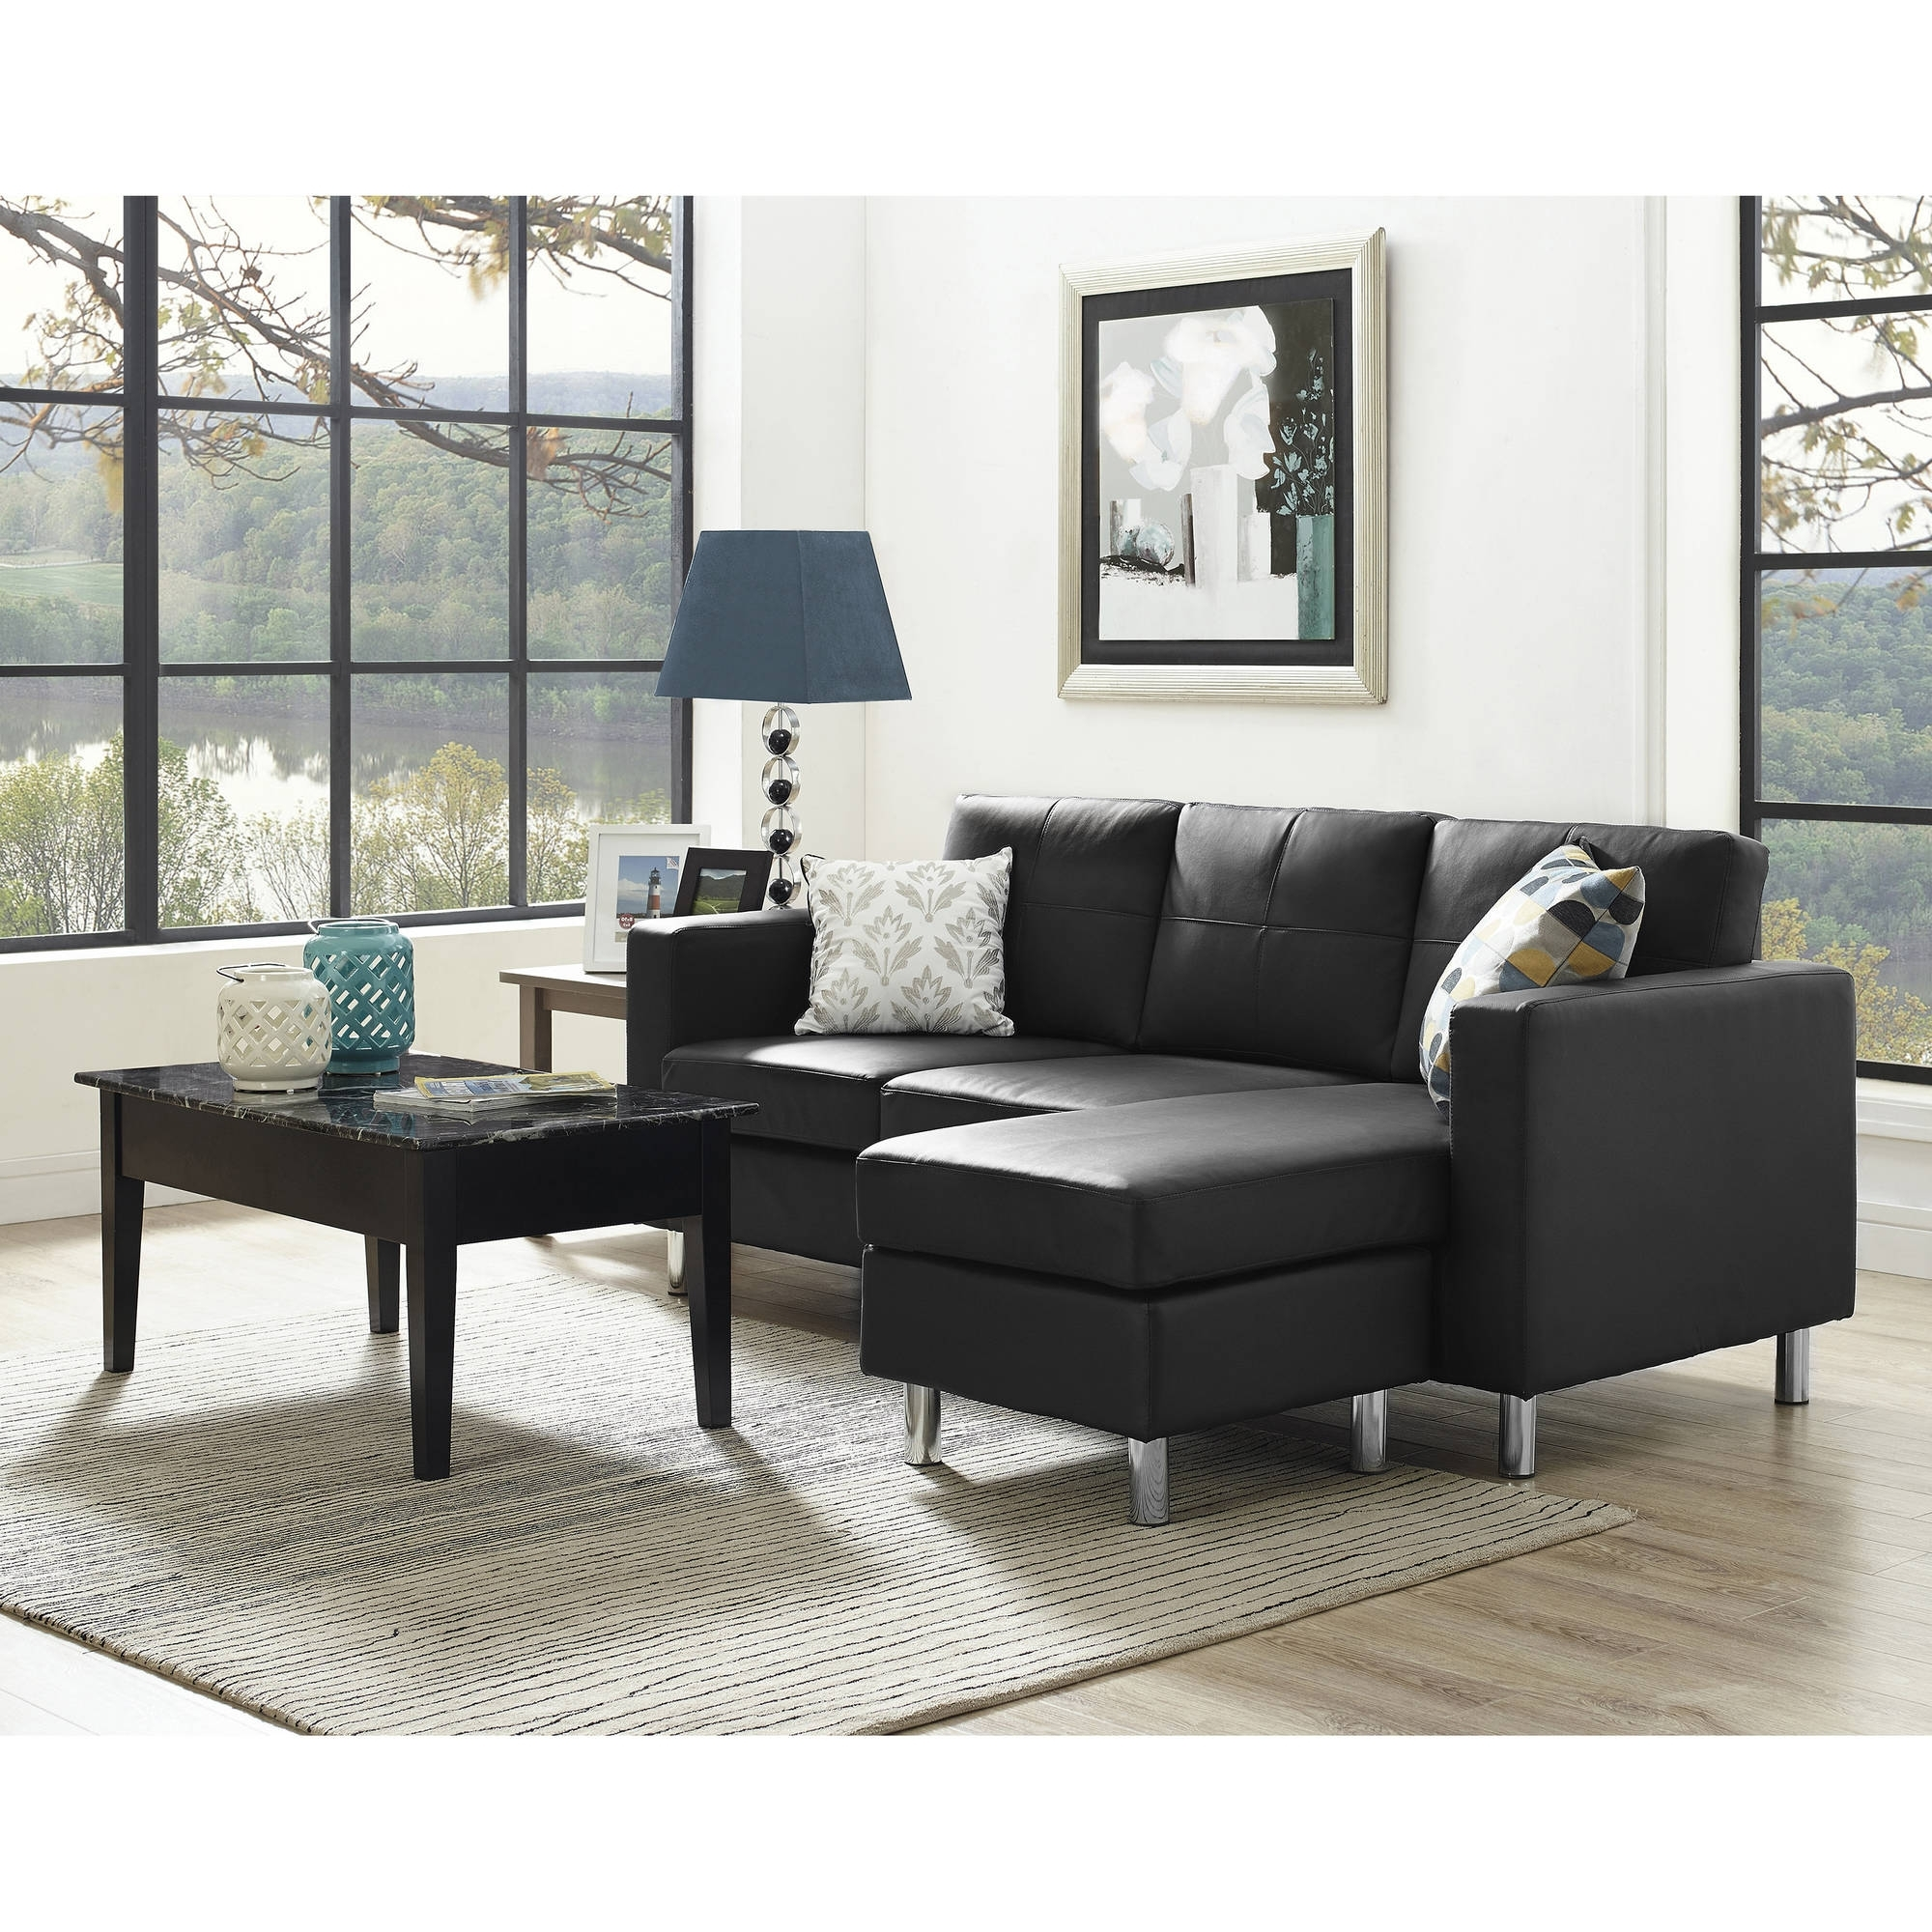 Recent Dorel Living Small Spaces Configurable Sectional Sofa, Multiple With Mini Sectional Sofas (View 14 of 20)